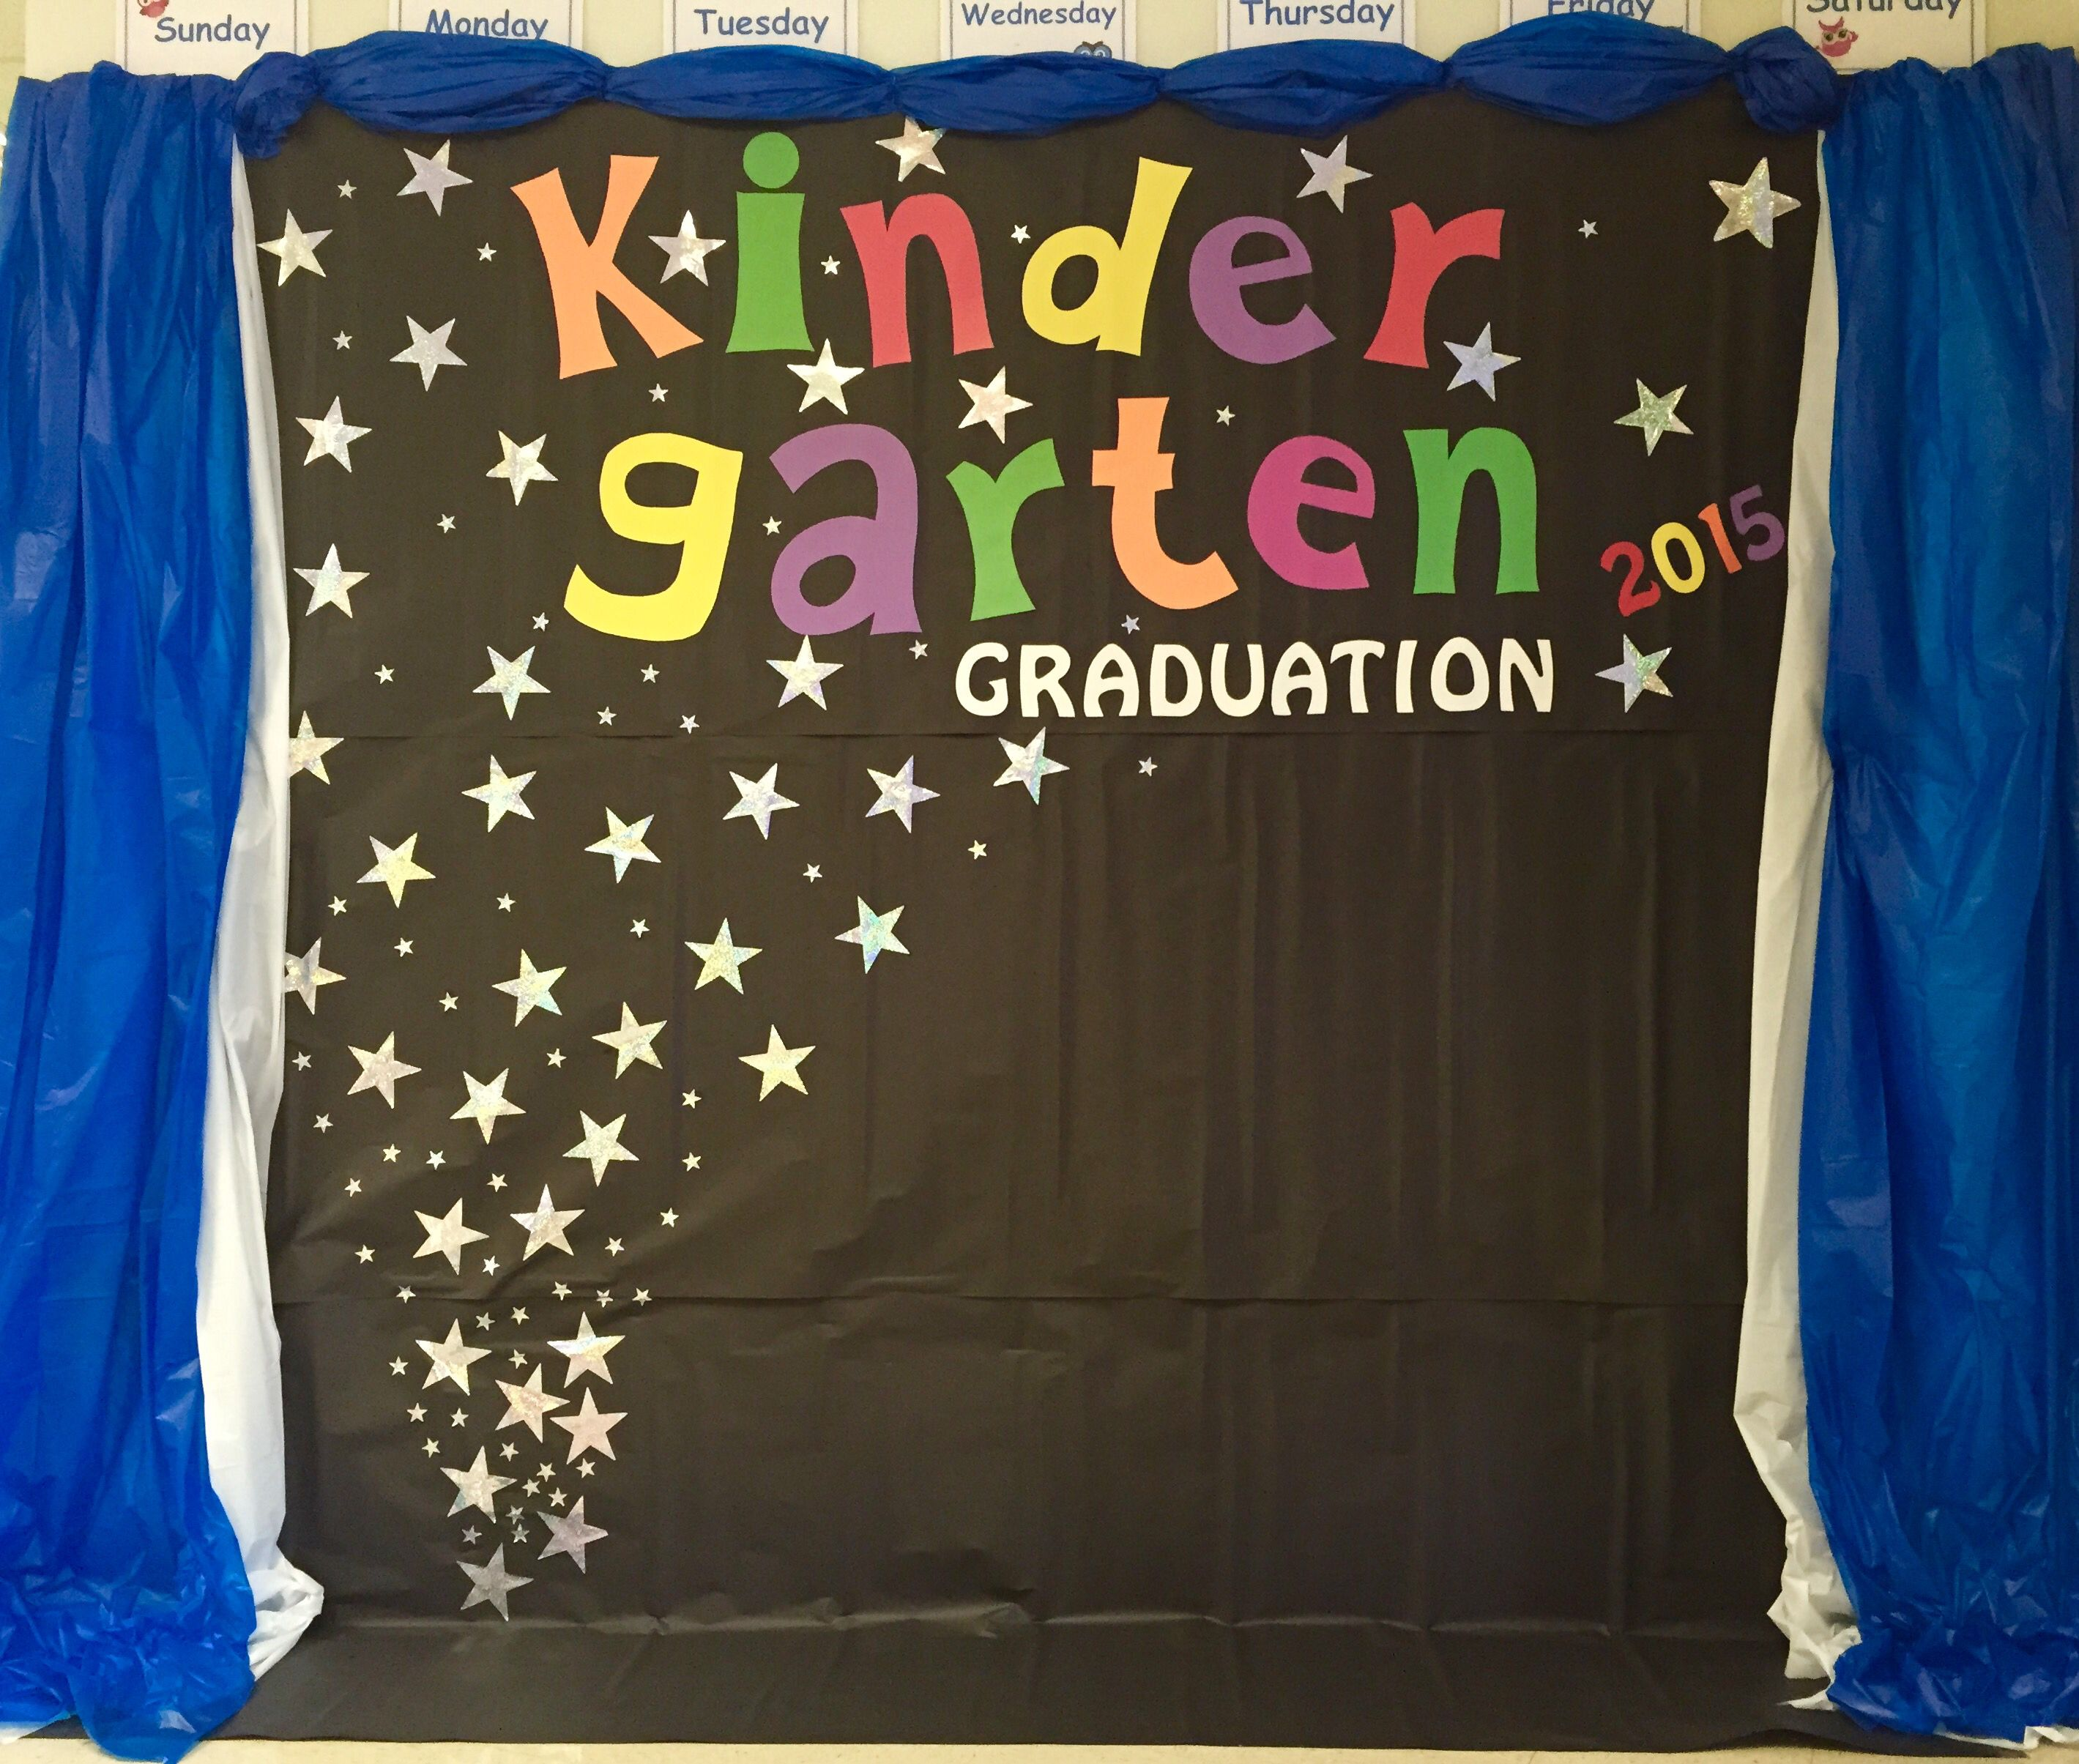 Kindergarten graduation backdrop door wall decoration school kindergarten graduation - Kindergarten graduation decorations ...